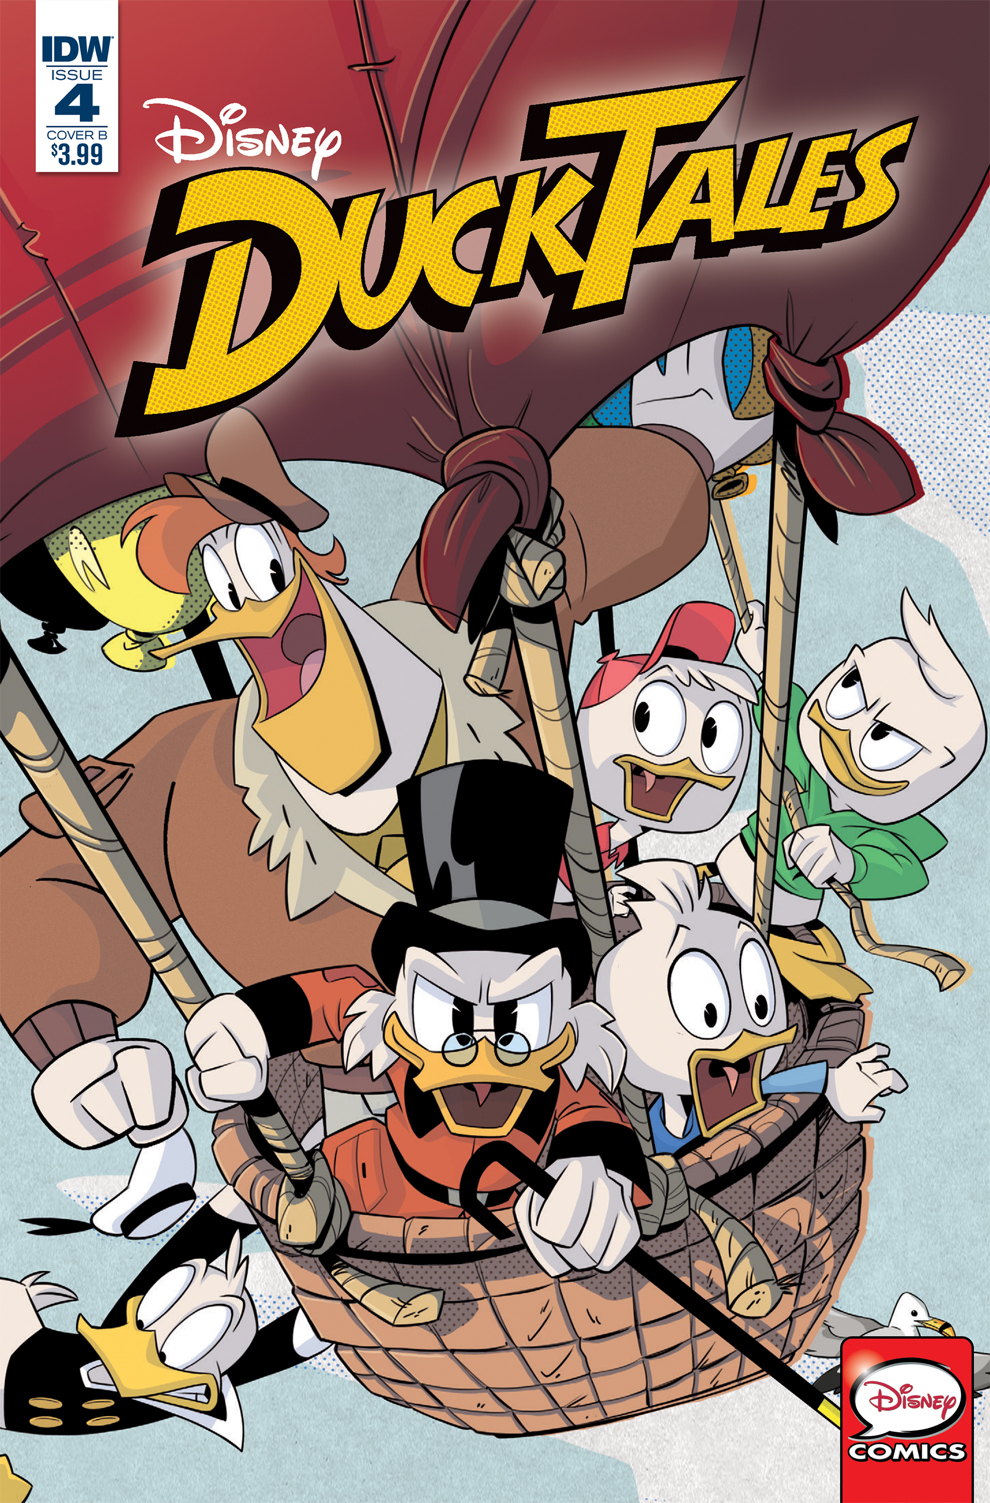 Coming Soon DuckTales Issue 4